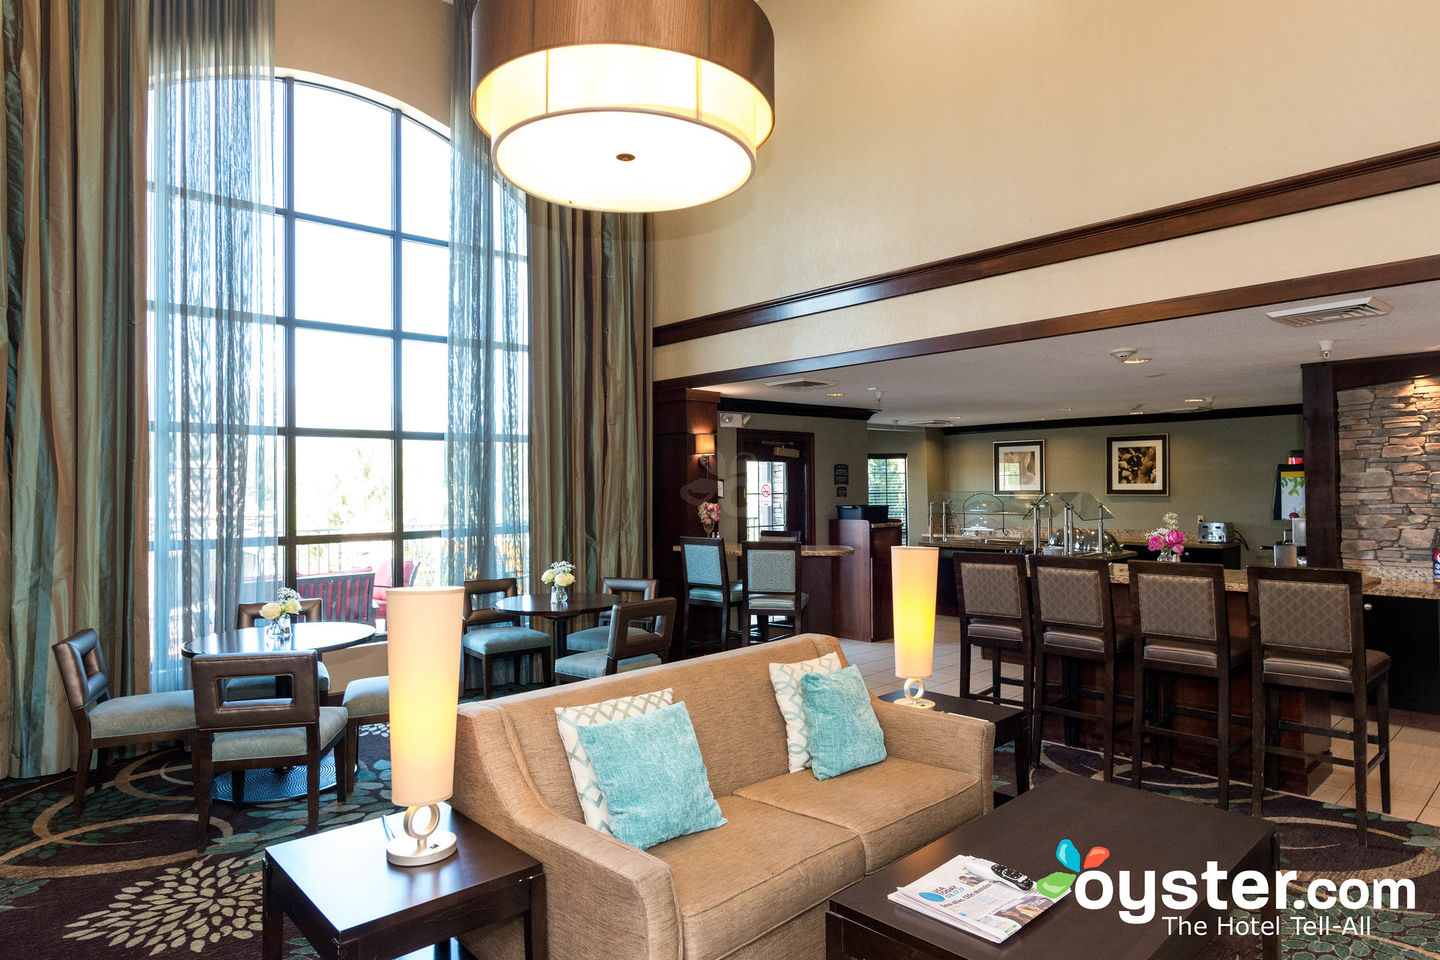 Staybridge Suites Colorado Springs Review What To Really Expect If You Stay